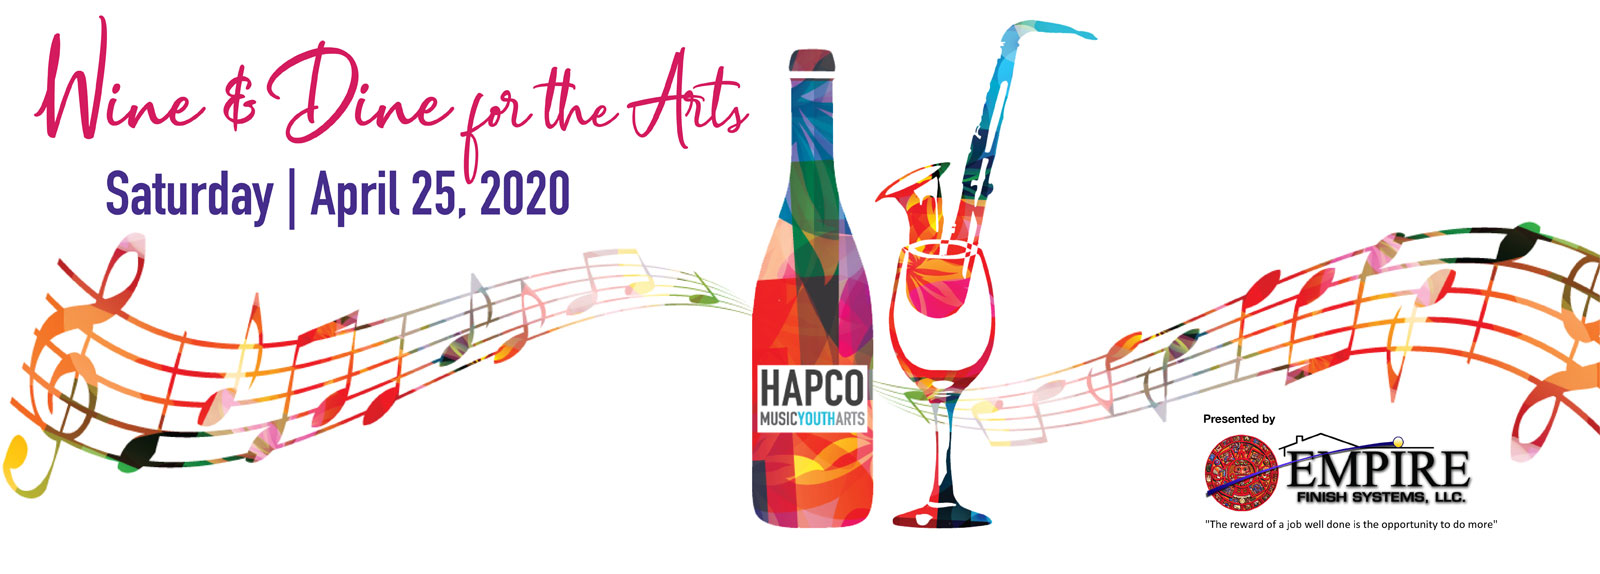 2020 Wine & Dine for the Arts